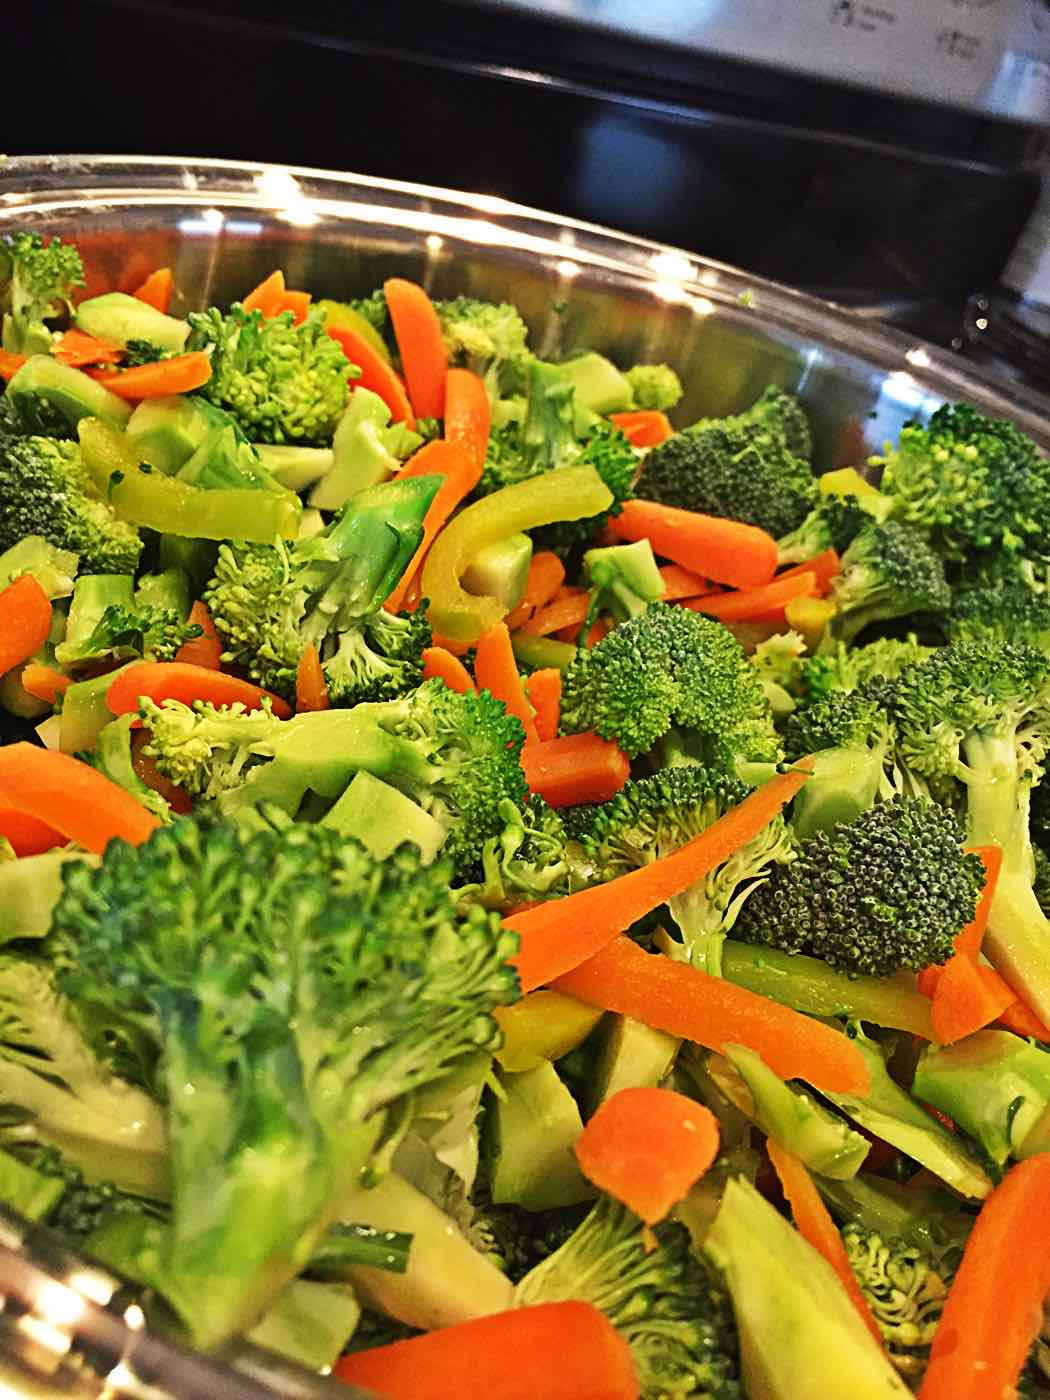 Sliced Broccoli carrots and green peppers for vegan no oil stir fry in wok